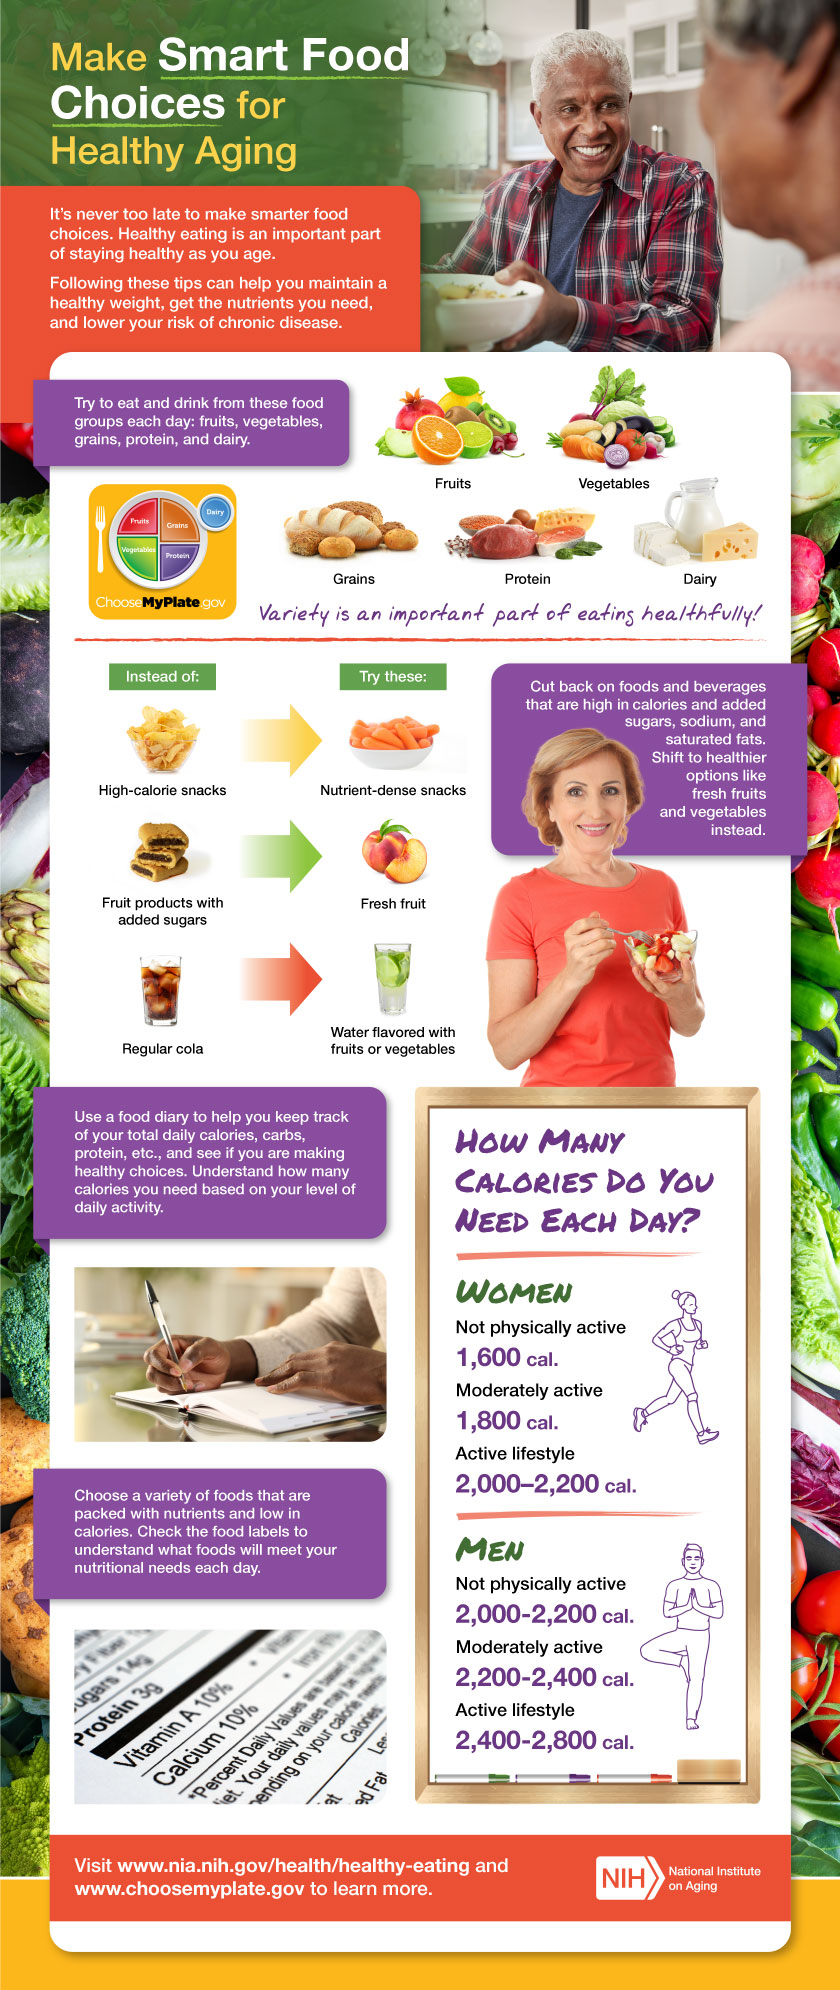 Make Smart Food Choices for Healthy Aging infographic. Full transcript below.